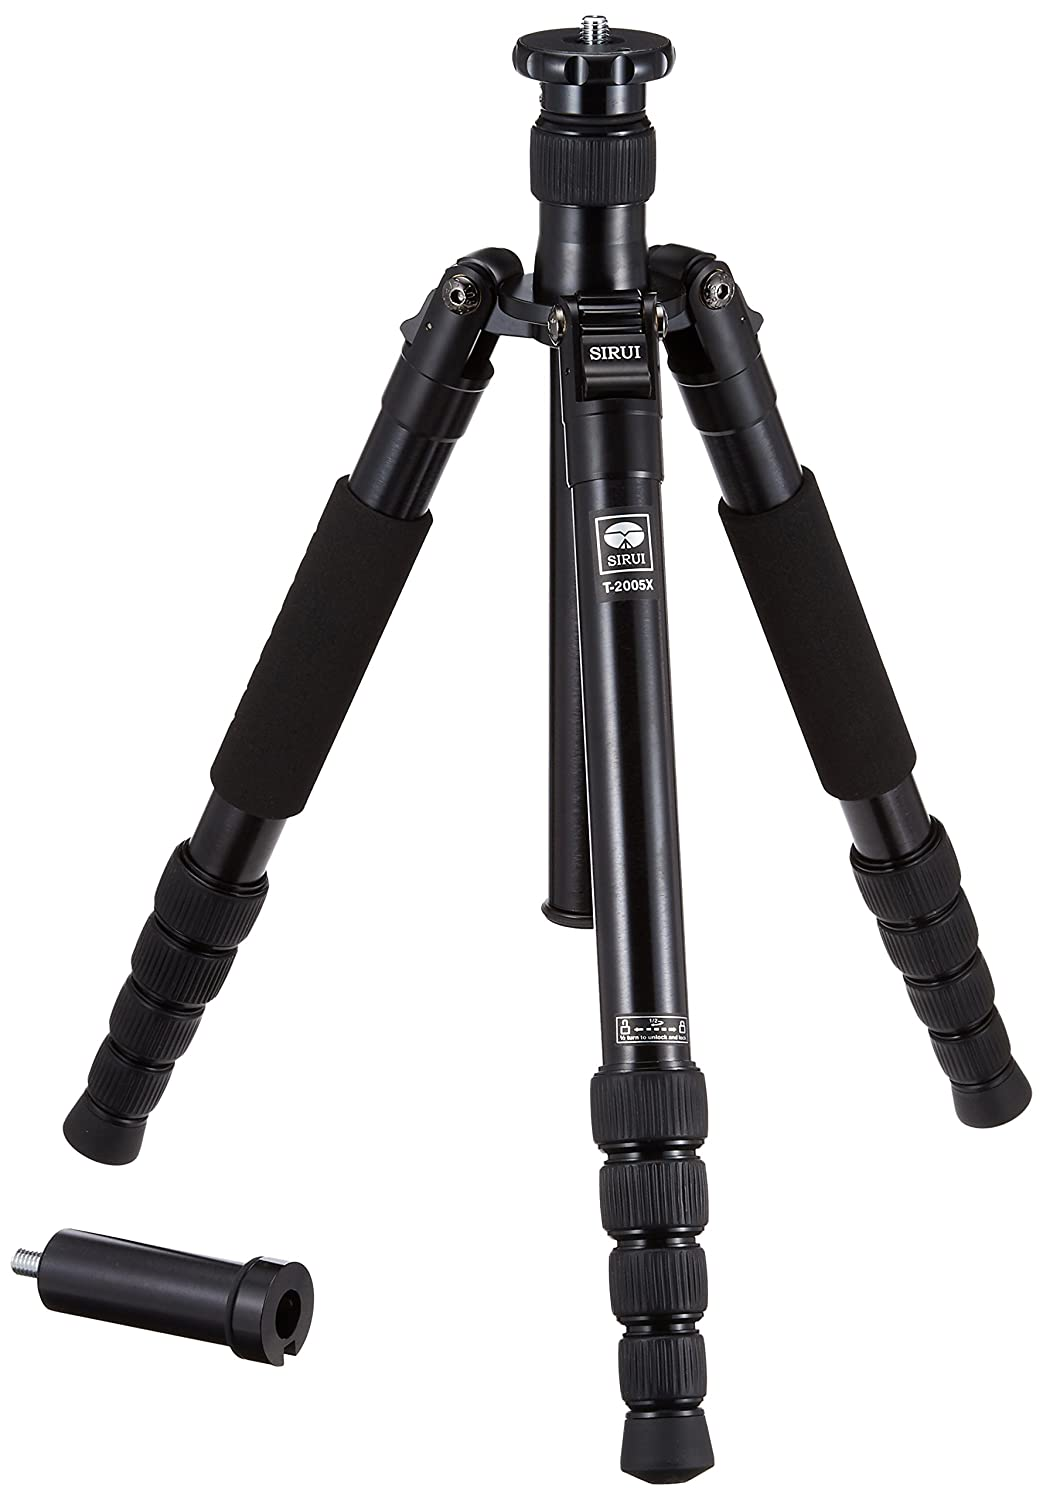 Buy Sirui T2005x Tx Series Tripod Legs 5 Section 61 Height Aluminum Sirui T 2005x Online At Low Price In India Sirui Camera Reviews Ratings Amazon In